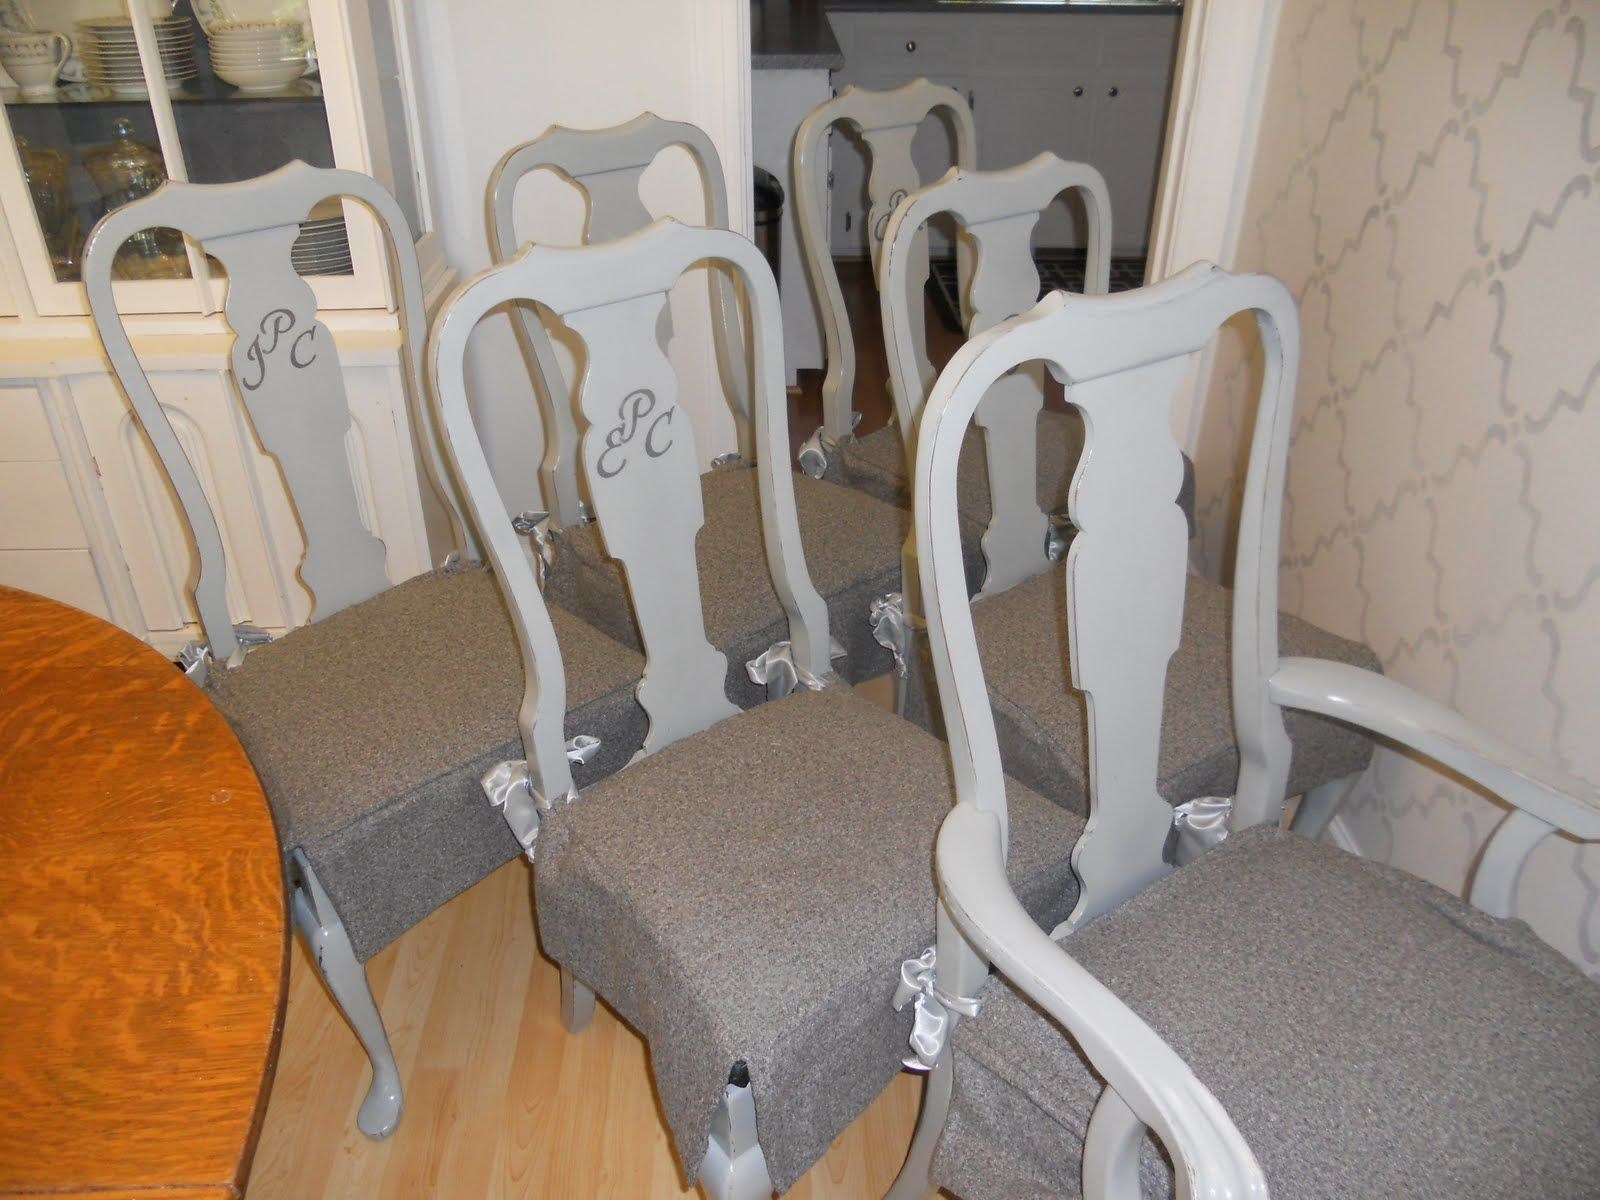 Queen anne furniture makeover  Dining room chair covers, Painted